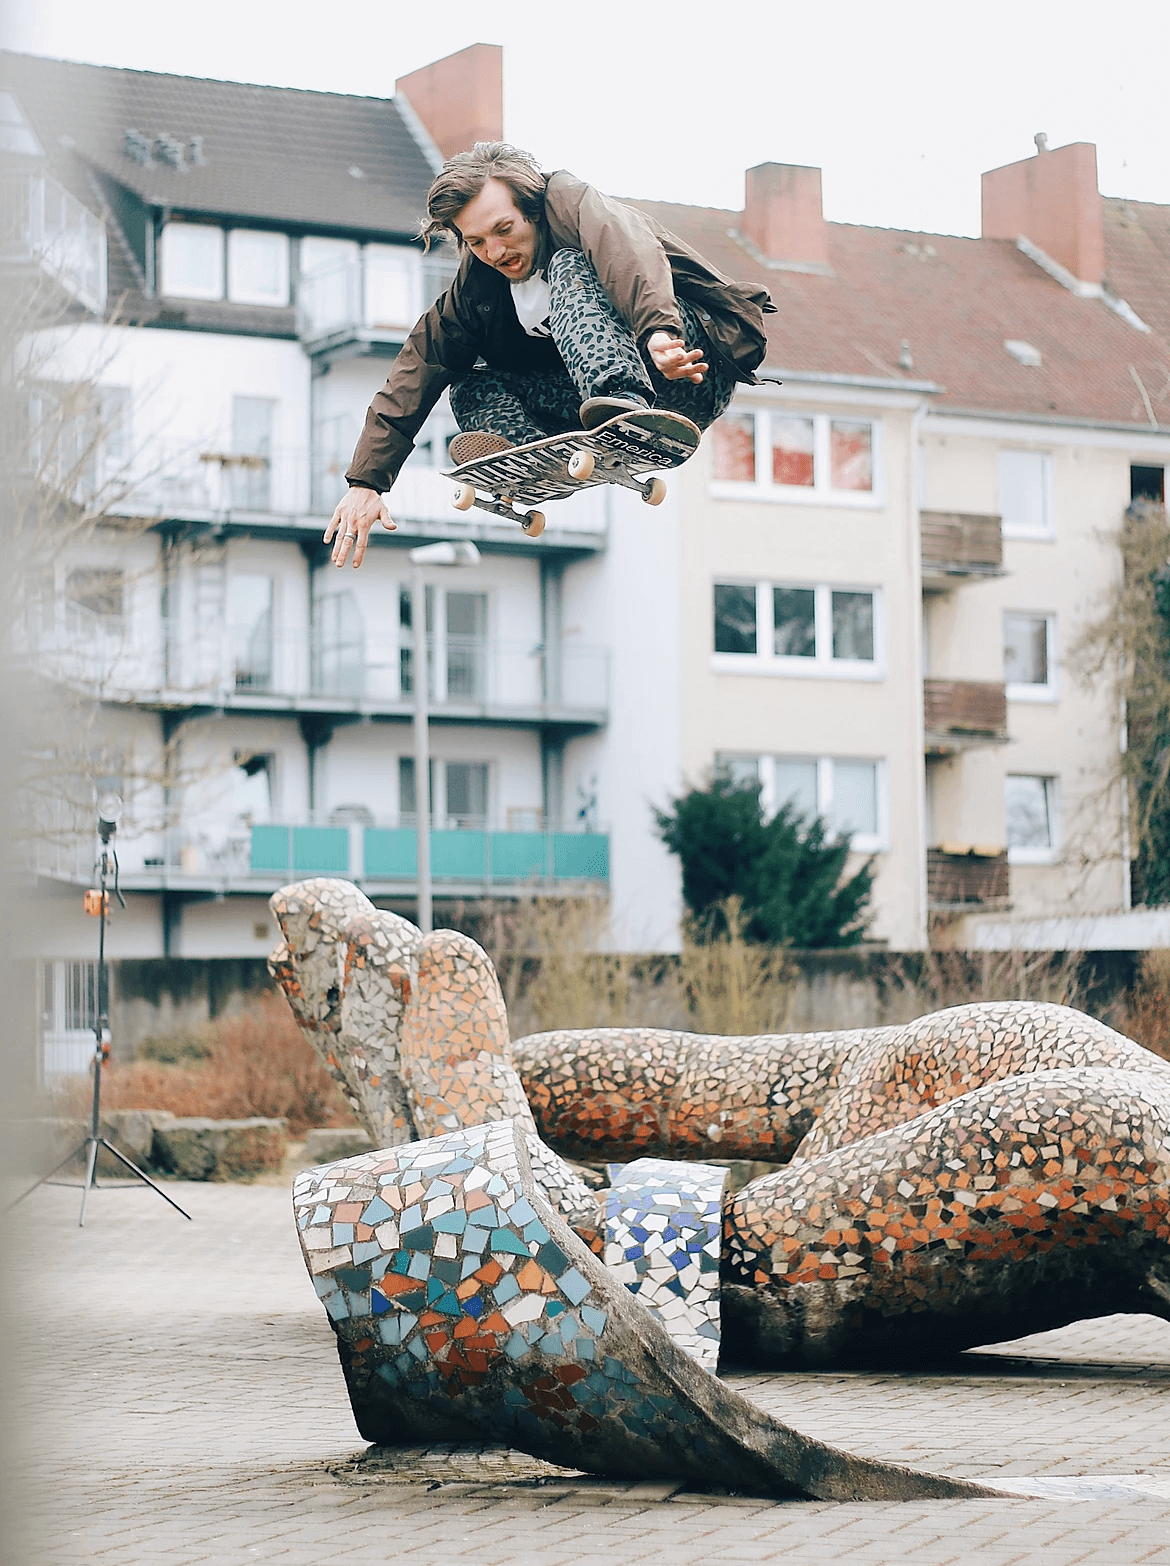 guy jumping on a skateboard